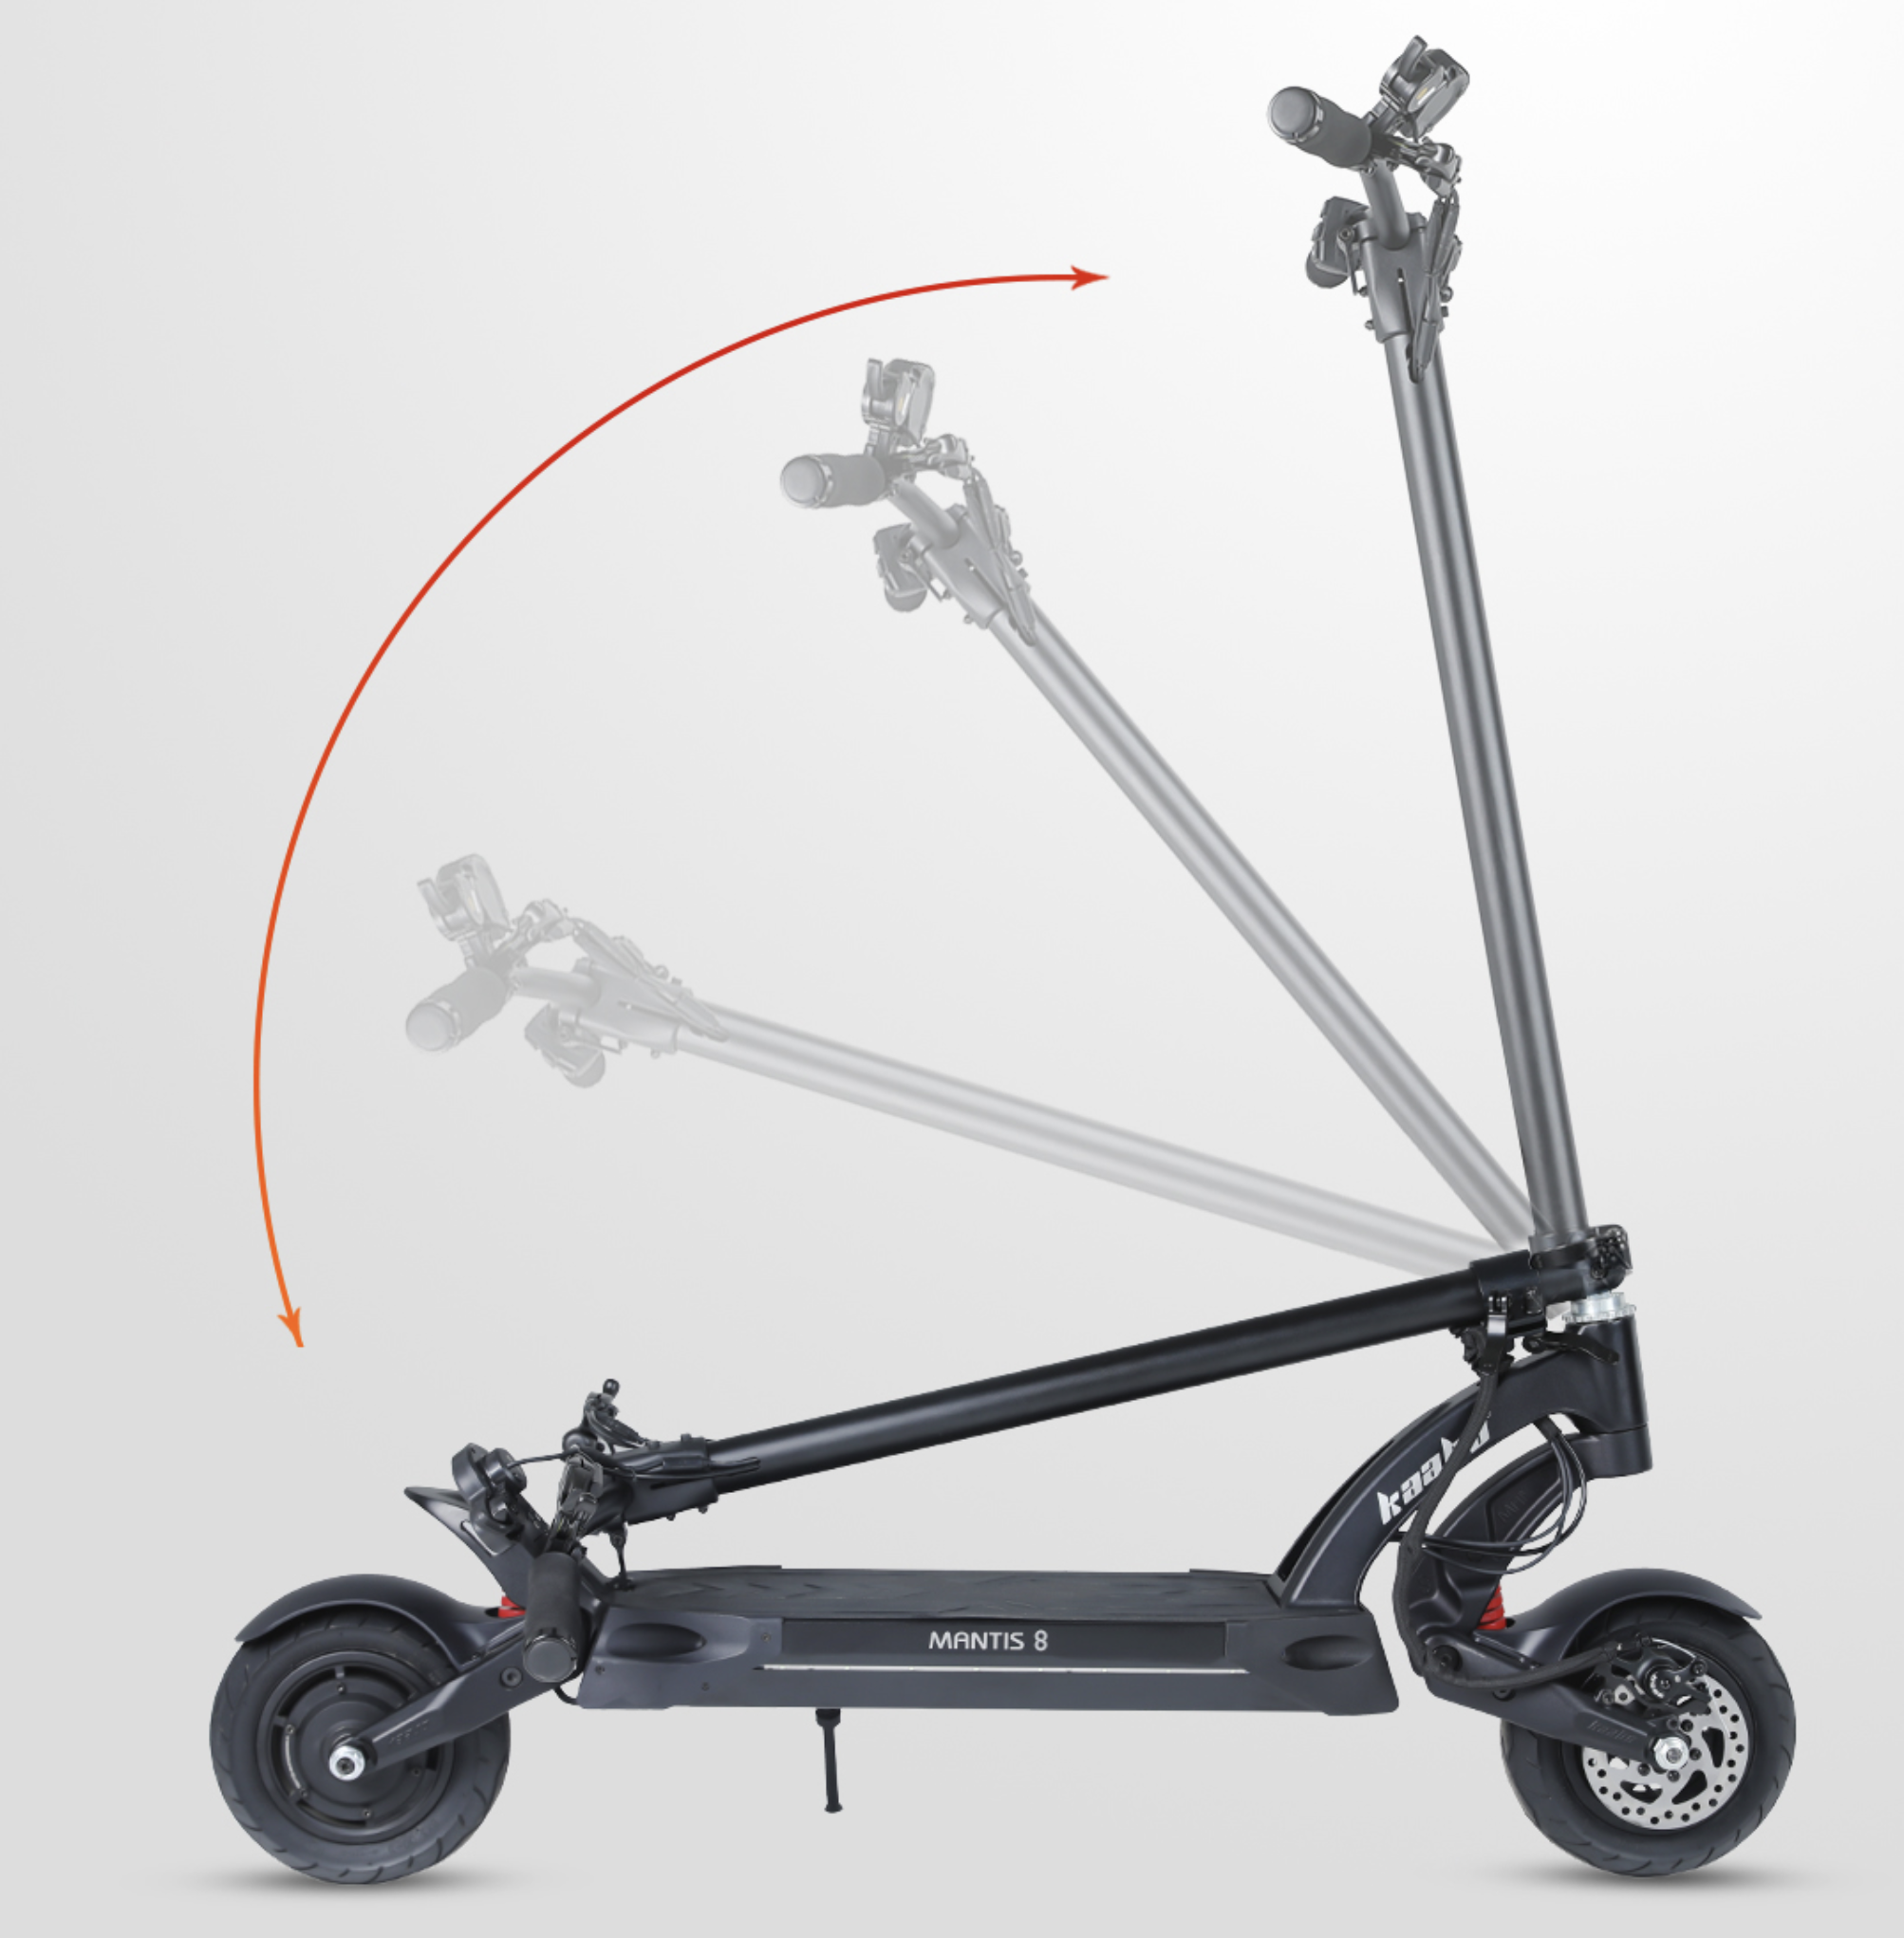 Kaabo Mantis 8 Duo Dual Motor Electric Scooter